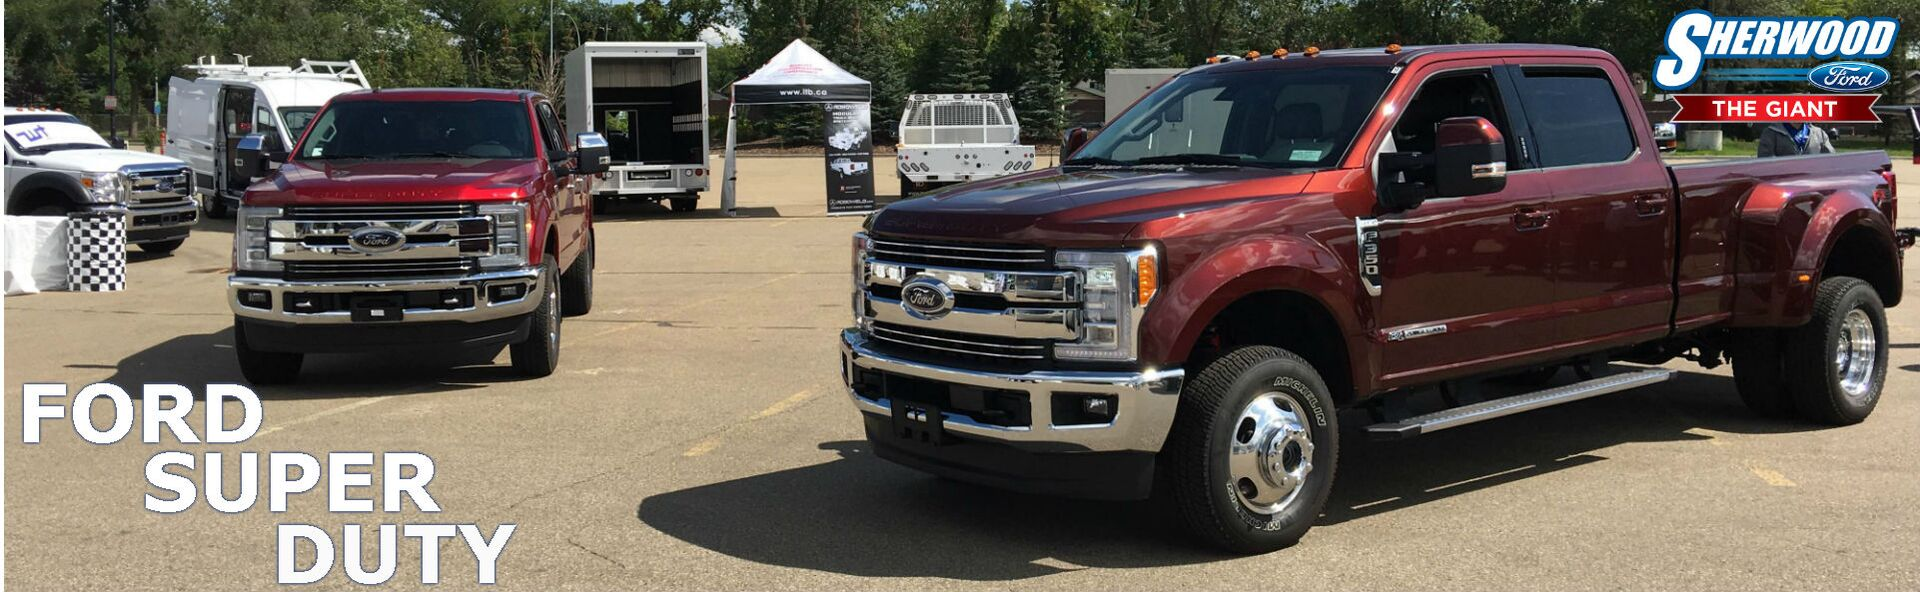 Sherwood Ford Ford Super Duty